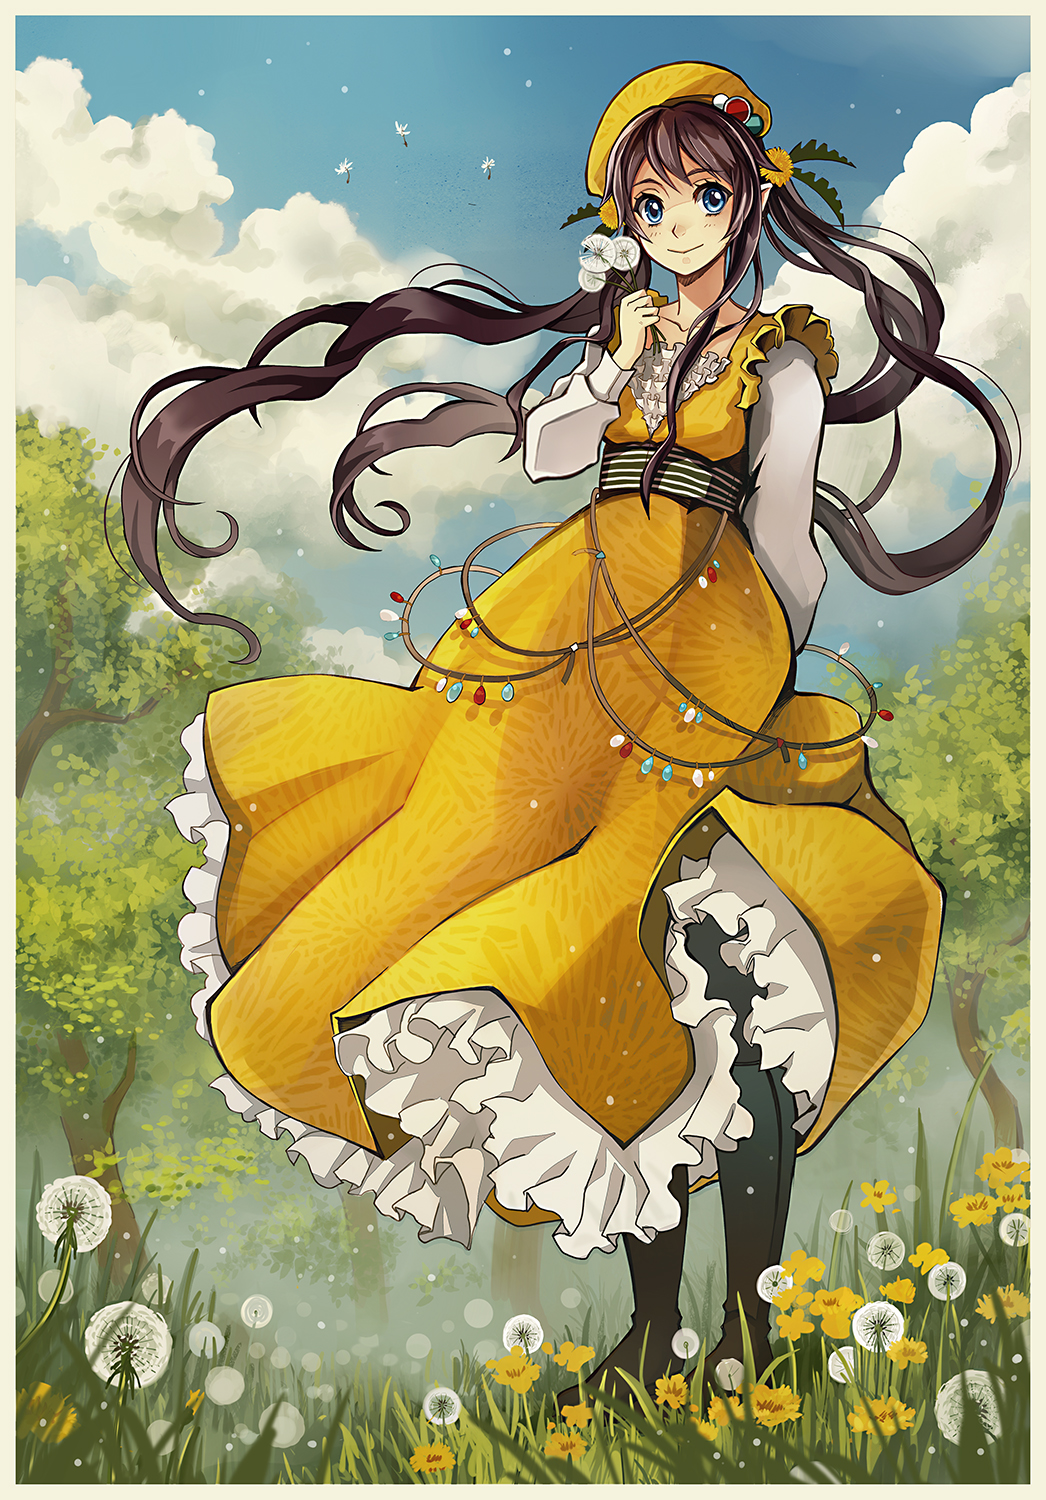 Dandelion dress by Radittz